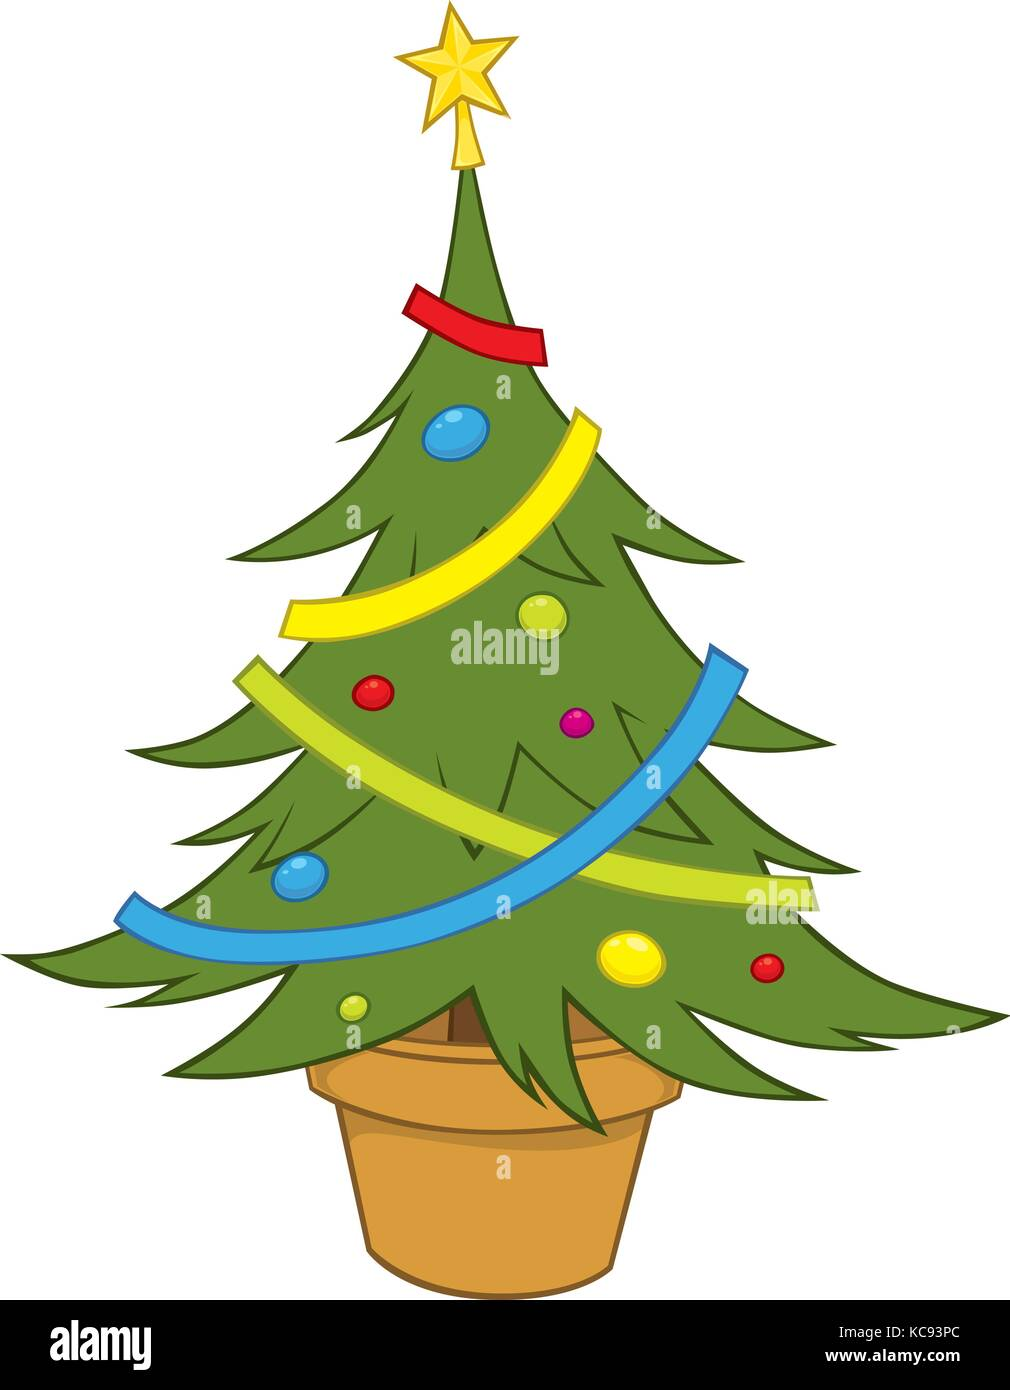 vector illustration of a simple christmas tree stock vector image art alamy https www alamy com stock image vector illustration of a simple christmas tree 162469732 html